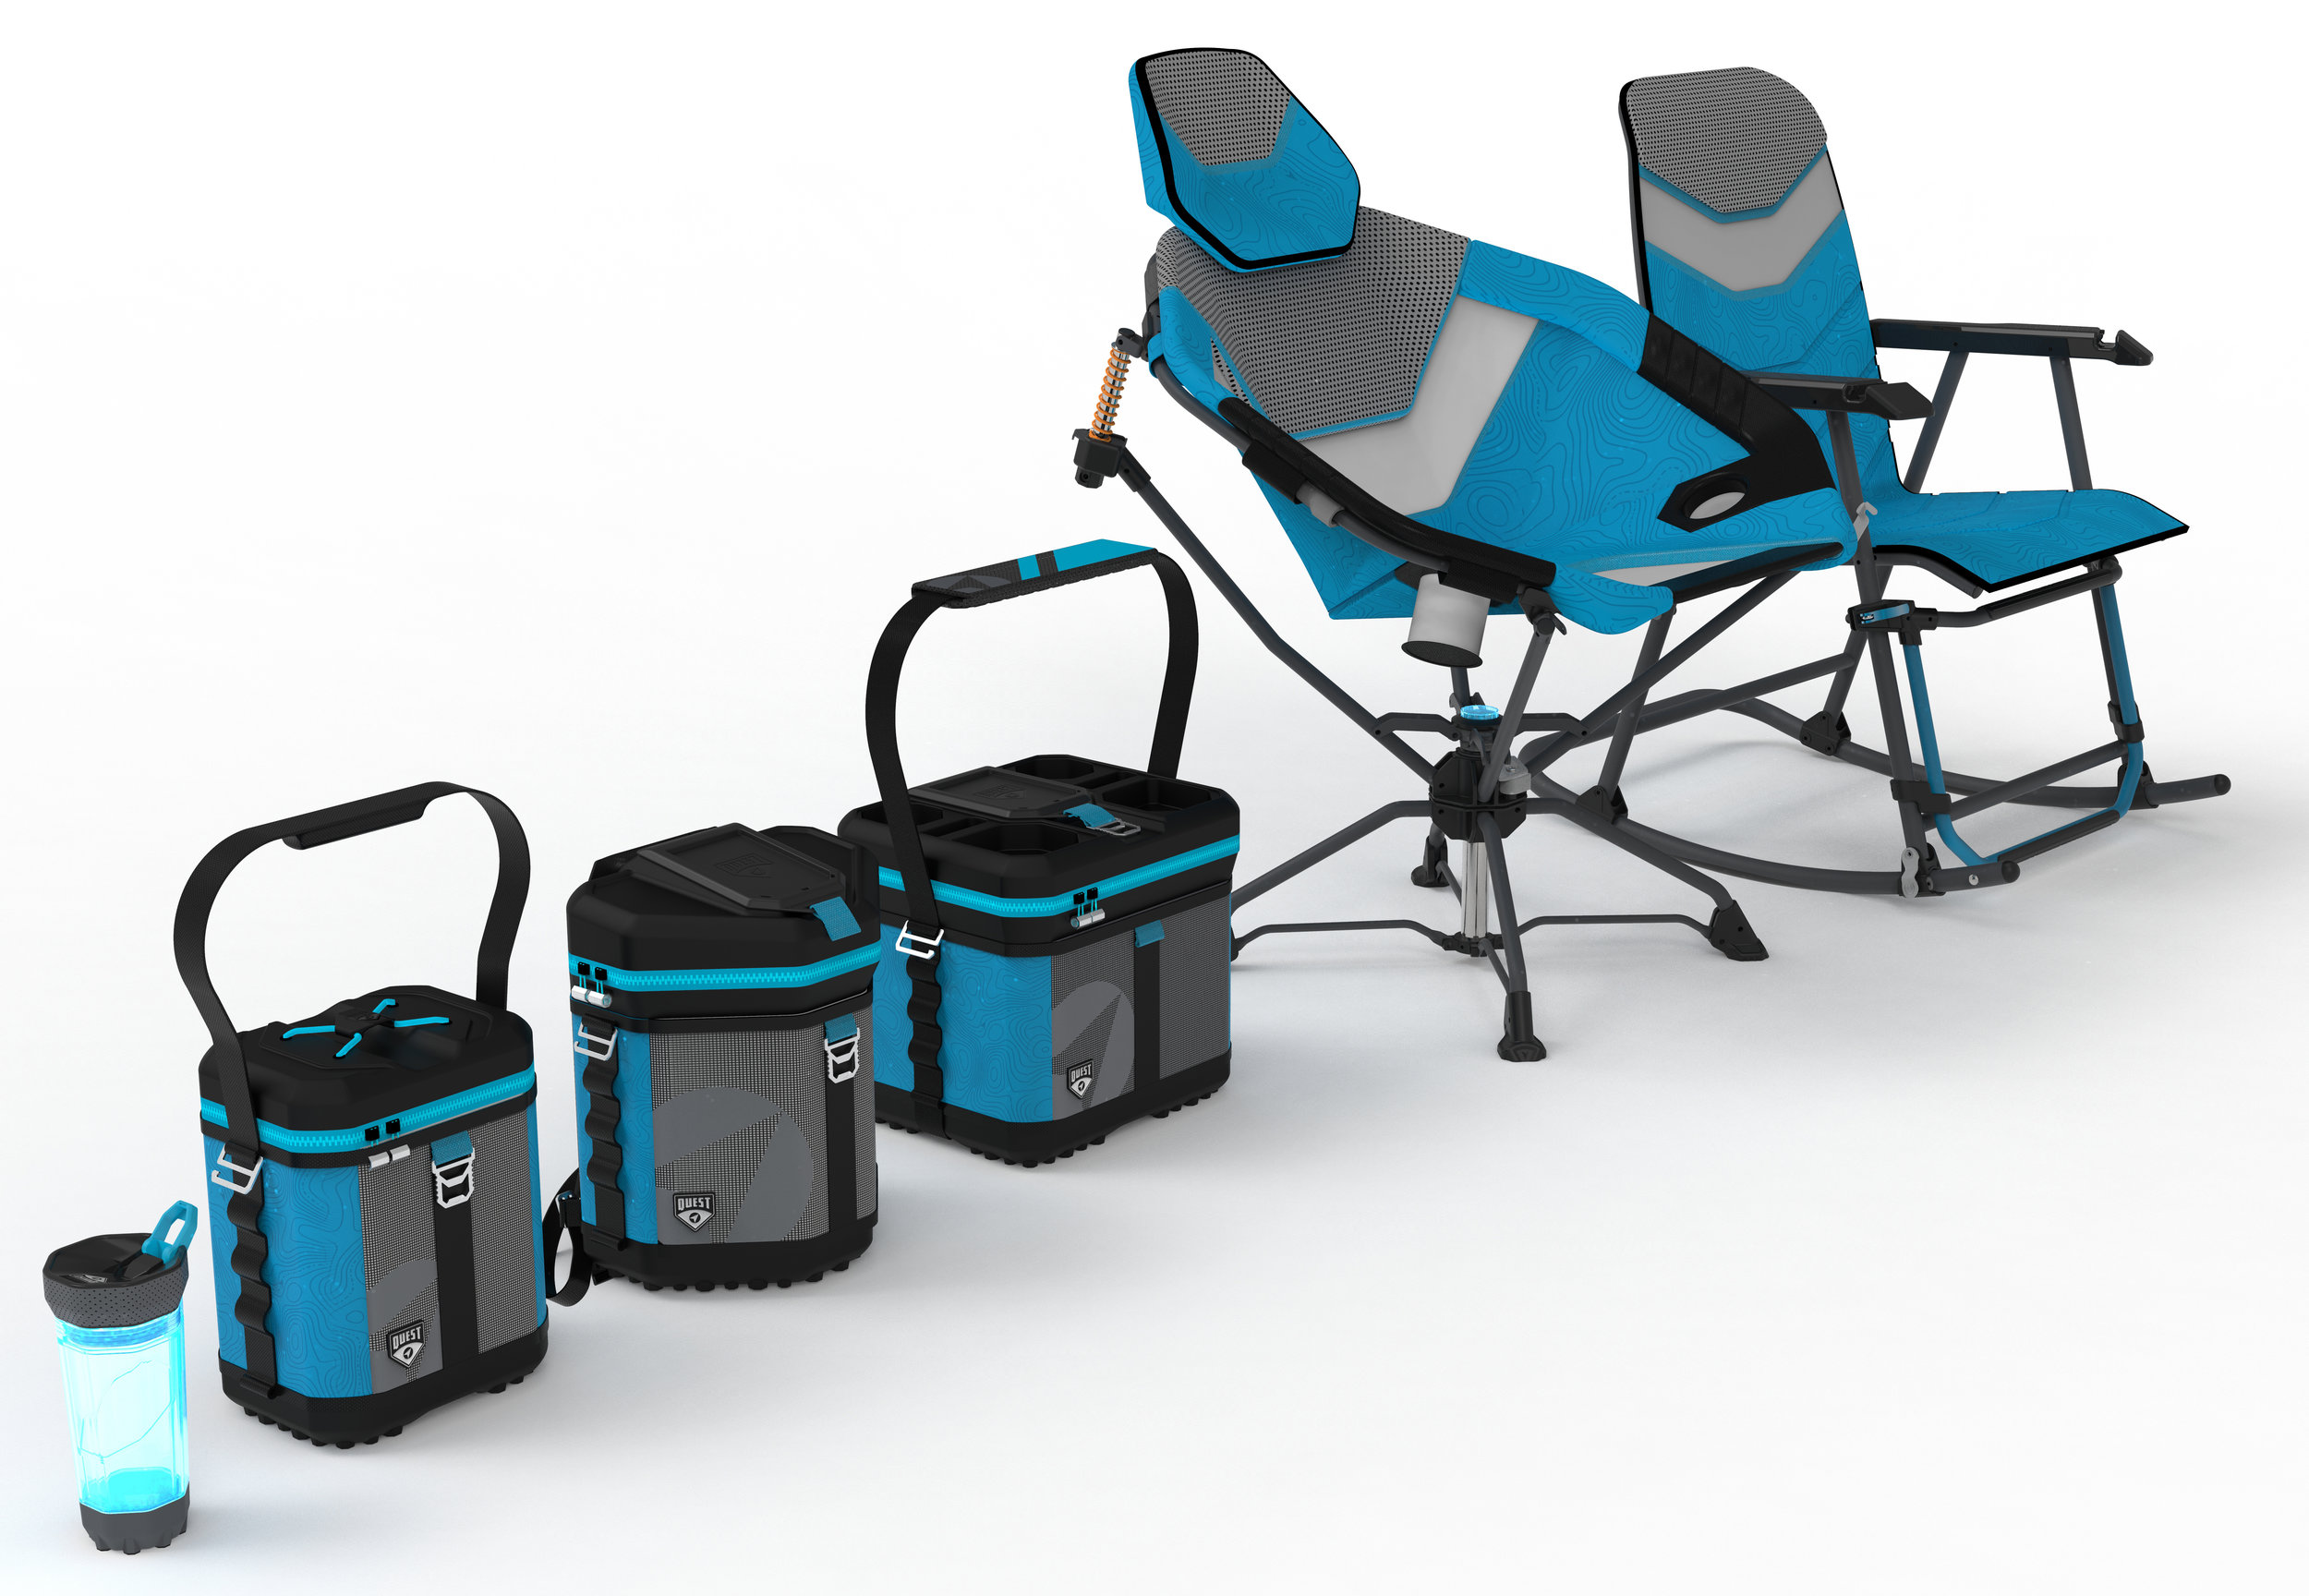 Quest - Athletic Inspired Food and Beverage Storage and Dynamic Movement Chairs